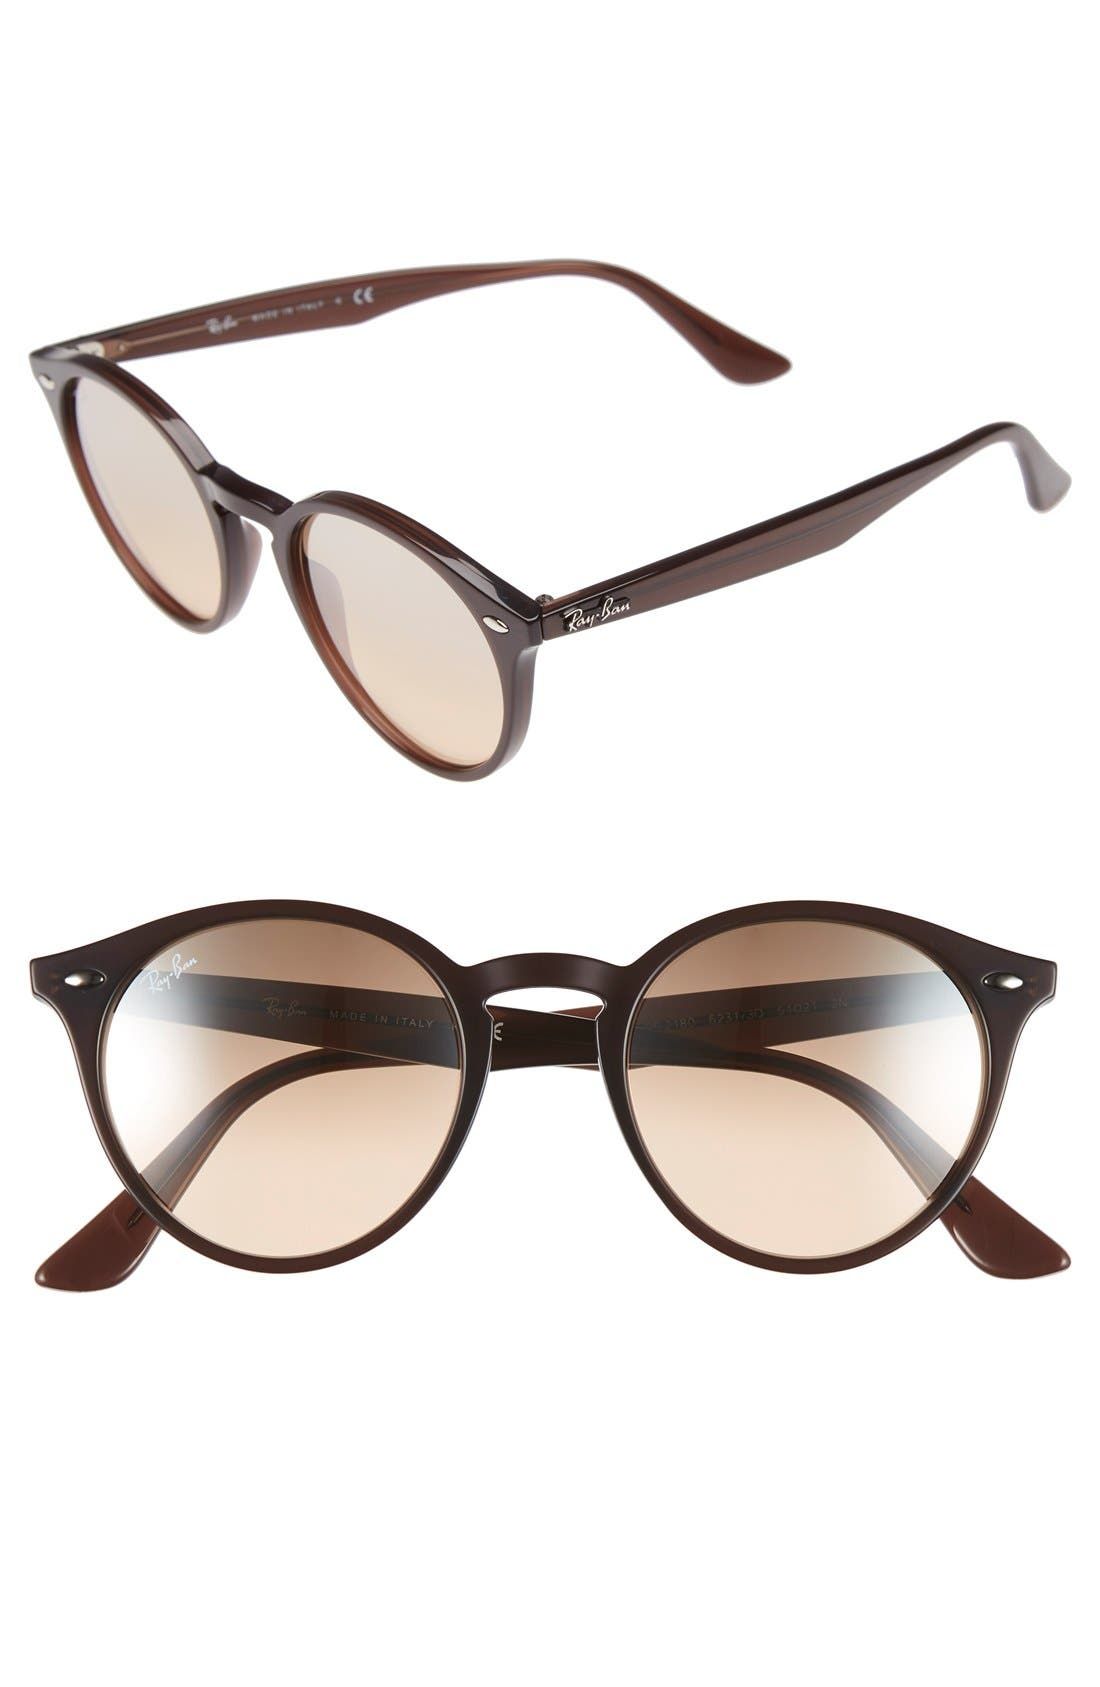 Main Image - Ray-Ban Highstreet 51mm Round Sunglasses